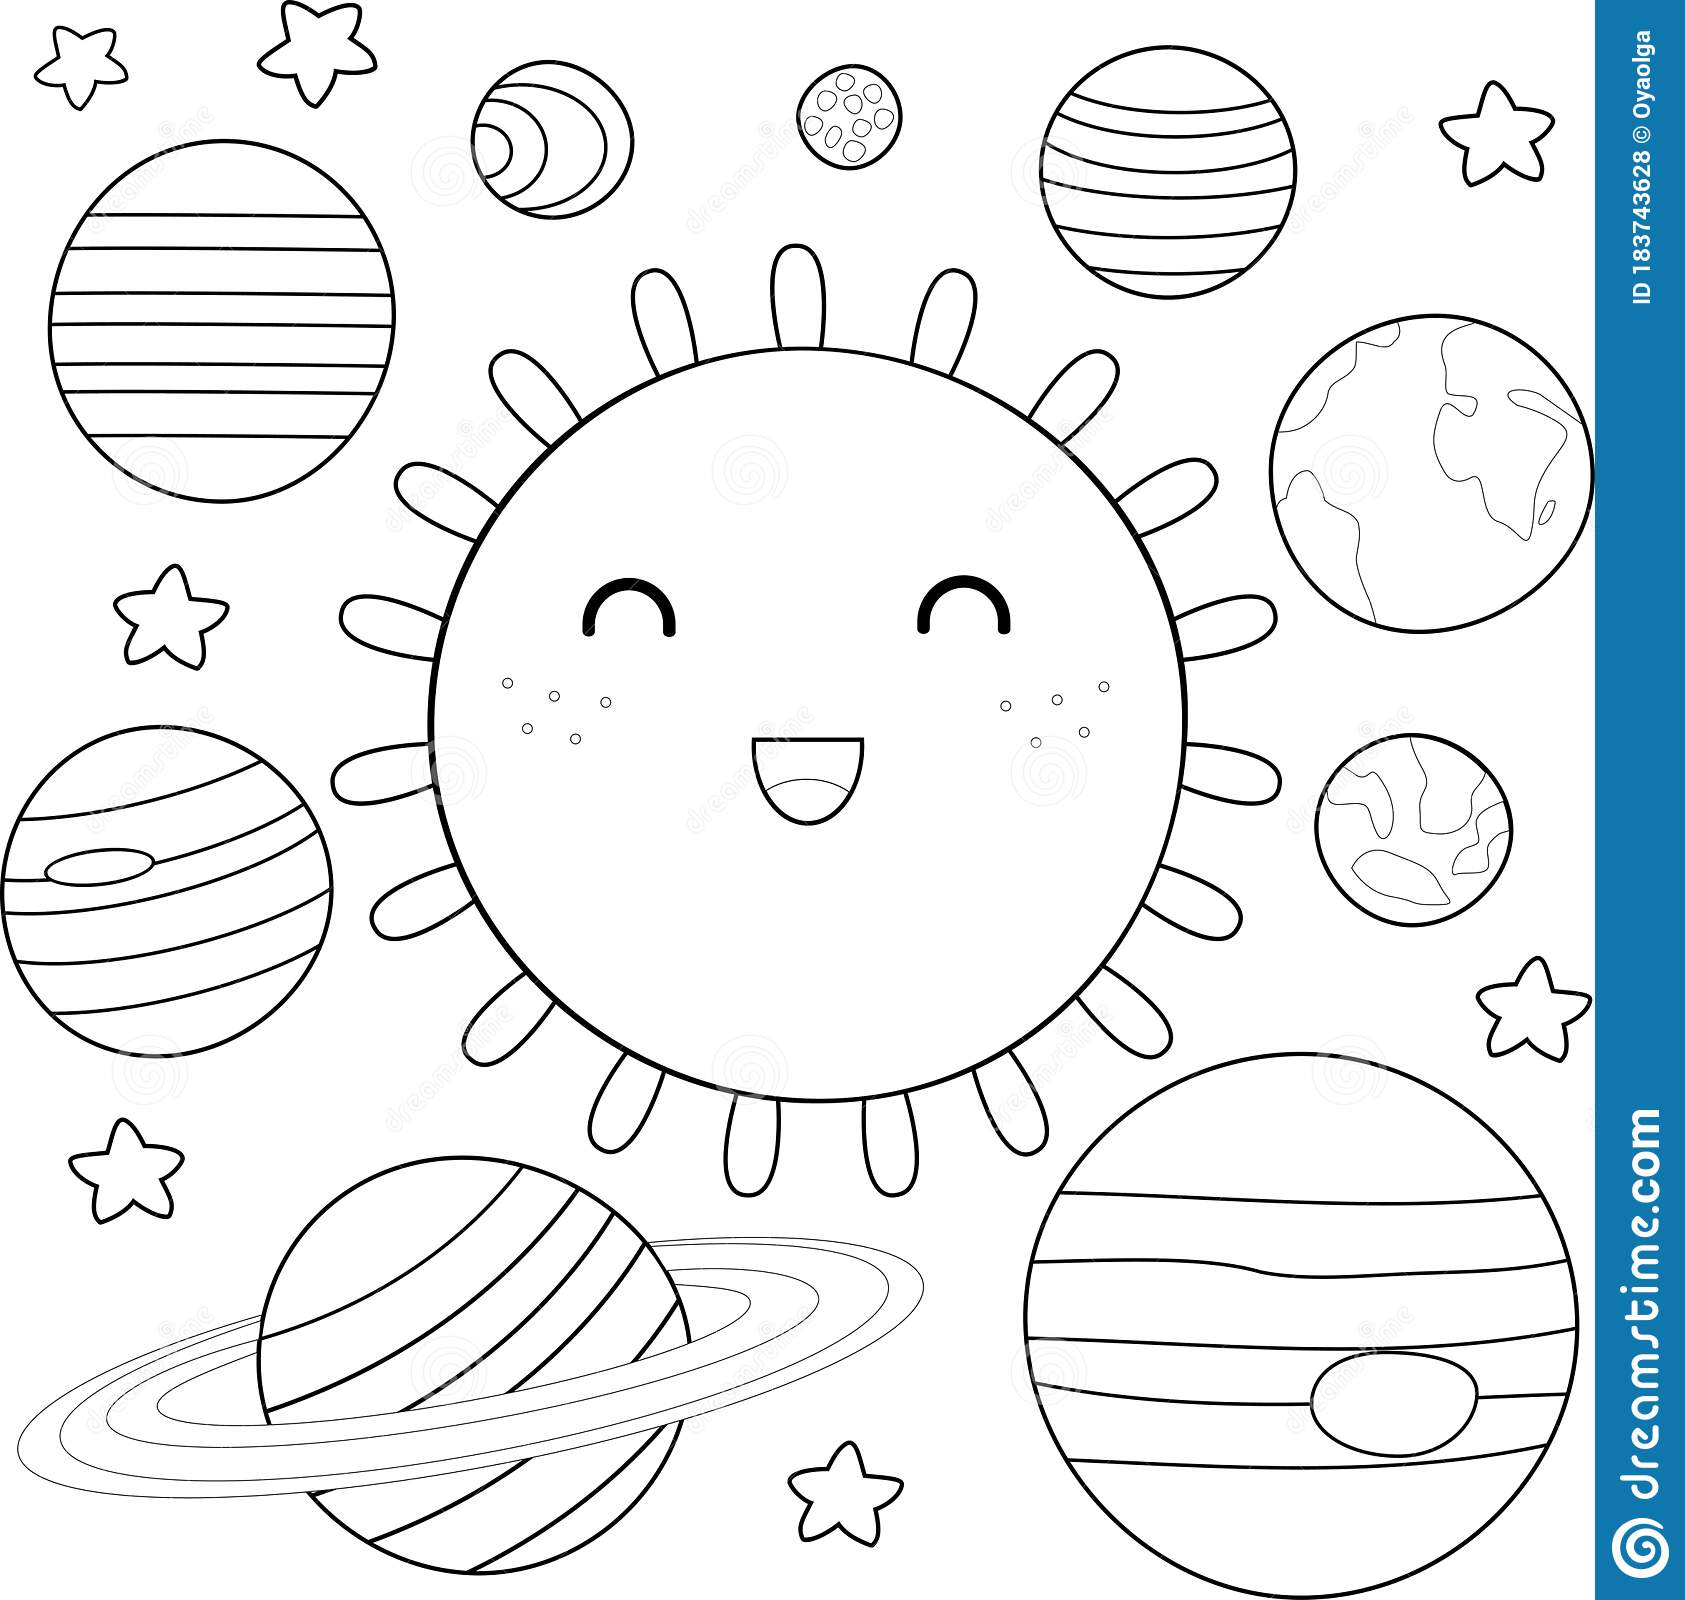 Coloring Page Of Solar System Stock Vector Illustration Of Baby Mars 183743628